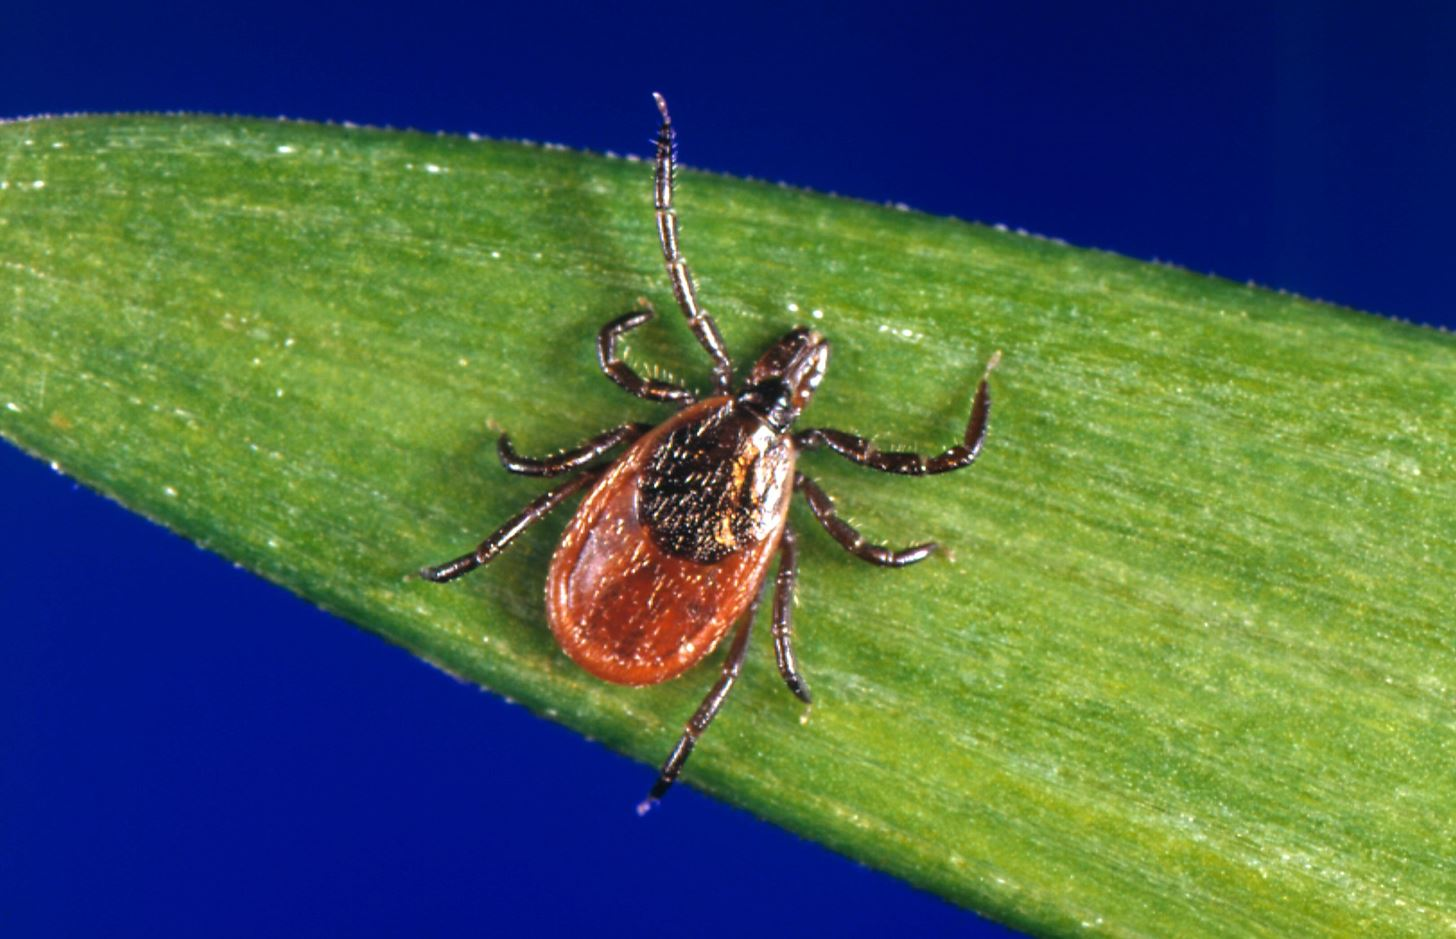 CDC Reports 2600% Increase in Tick-Borne Babesiosis Infections in Wisconsin in 12 Years